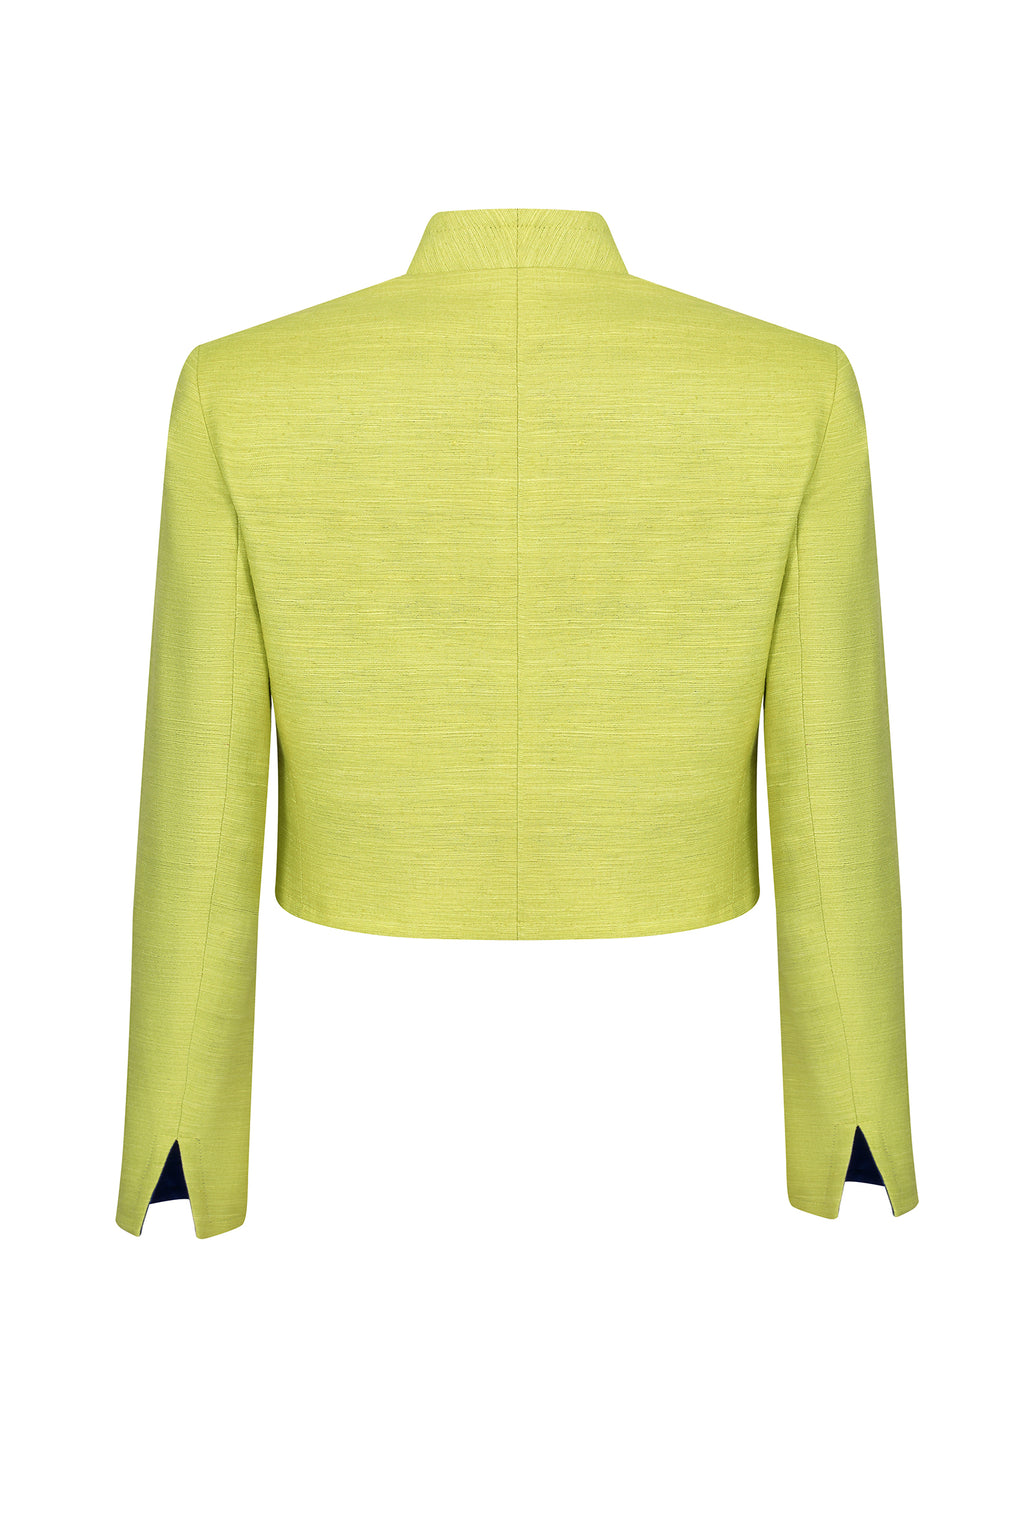 Waist-length jacket in lime and sapphire raw silk - Hermione